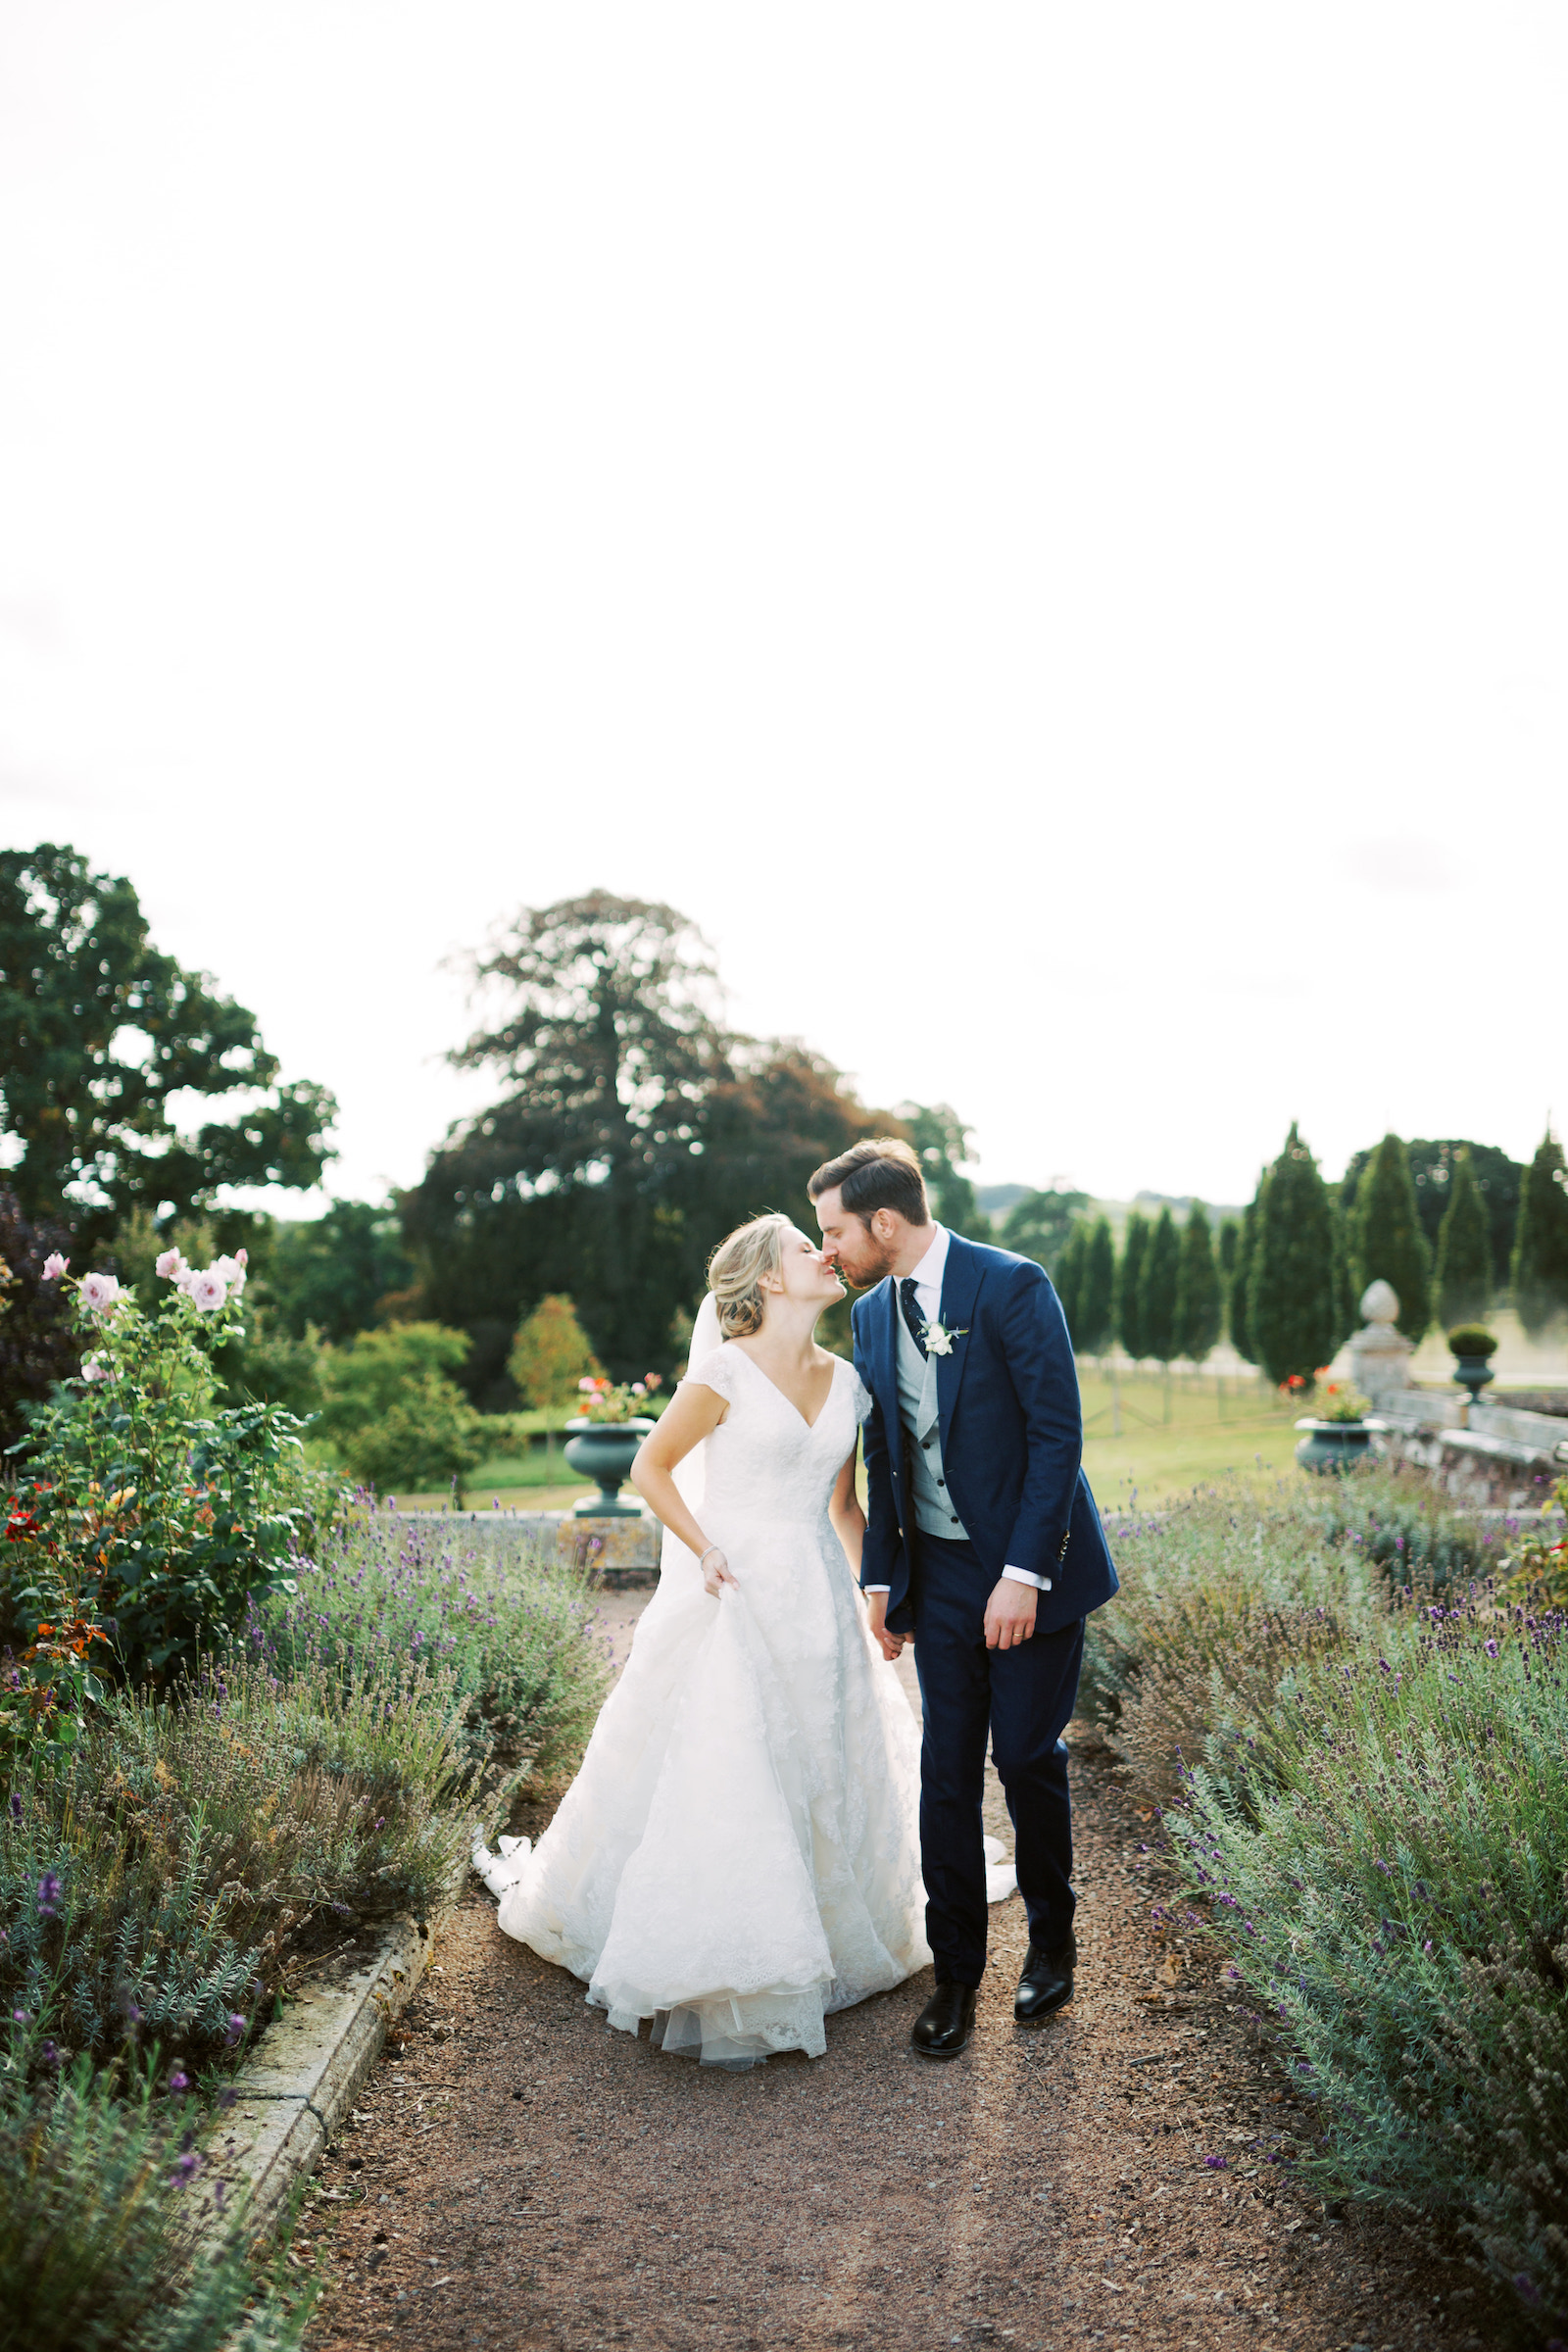 Lily & Sage_Luxury Wedding Planner UK_English Country House Wedding Soft Pale Blue White and Silver Toned Green Neutral Tones Overseas Singapore Pynes House_Andrew & Ada Photography198.jpg